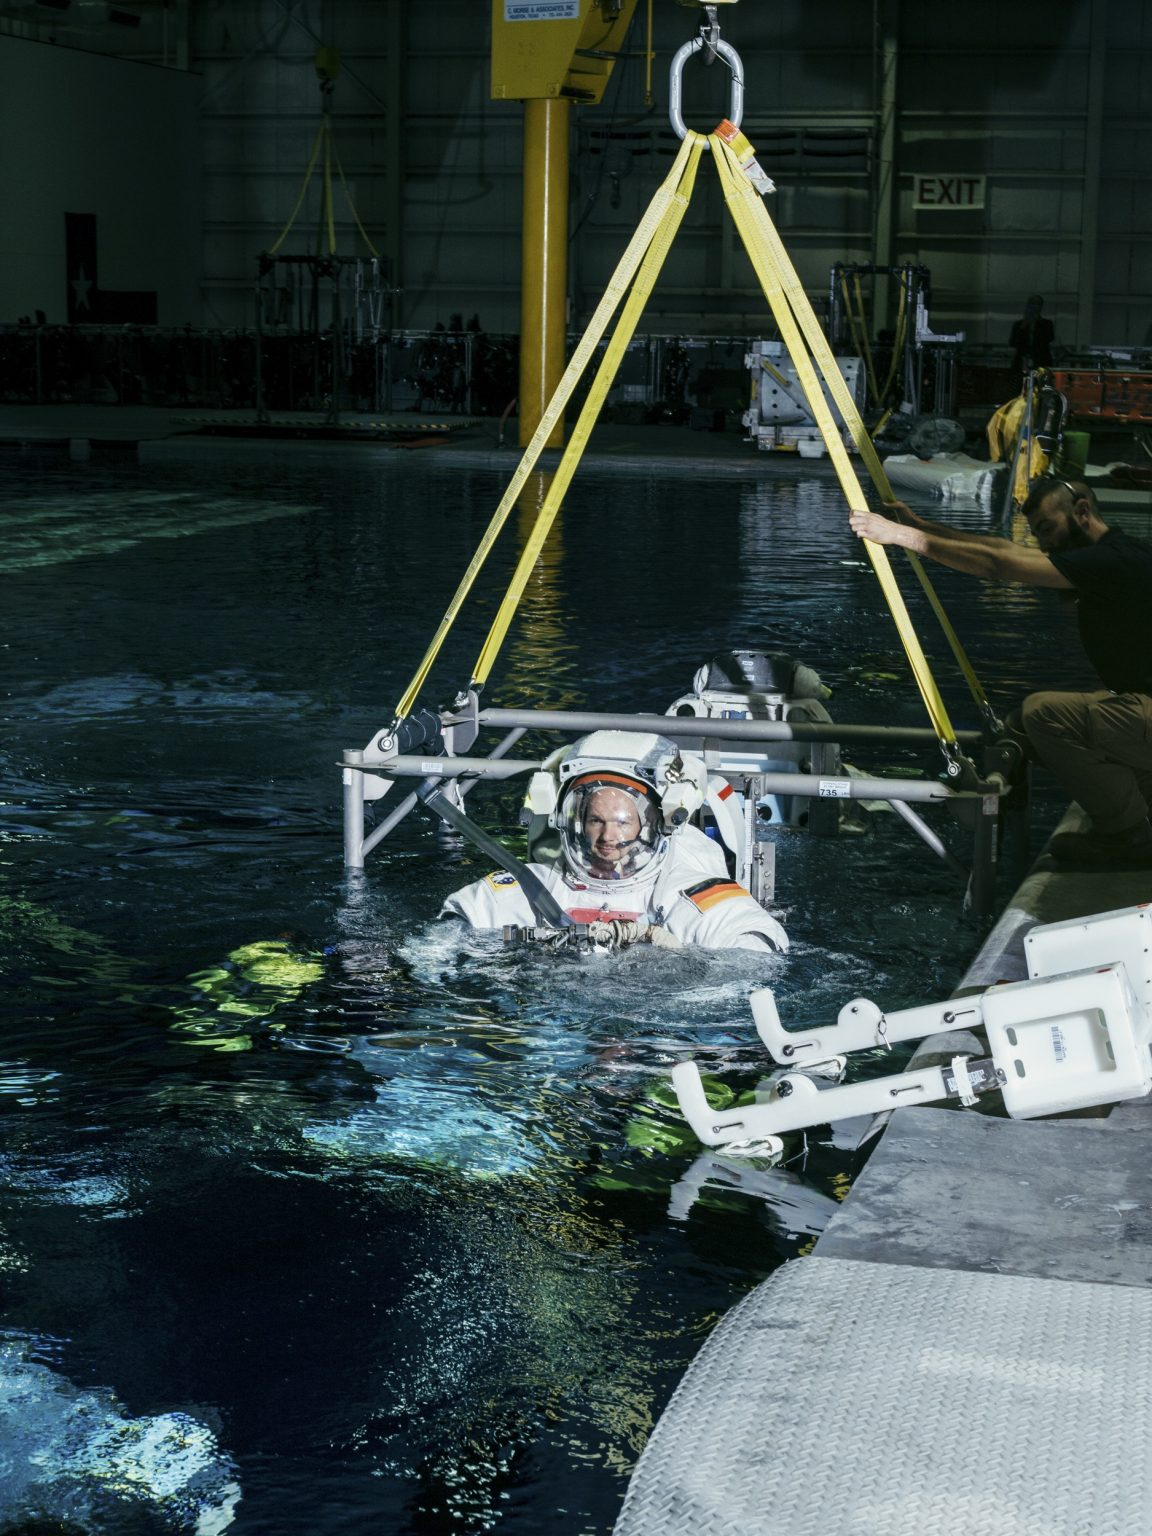 Alexander Gerst at the NASA Neutral Buoyancy Laboratory, an astronaut training facility with a pool containing a 1:1 replica of the International Space Station. NASA Johnson Space Center, Houston, Texas, USA, 2018